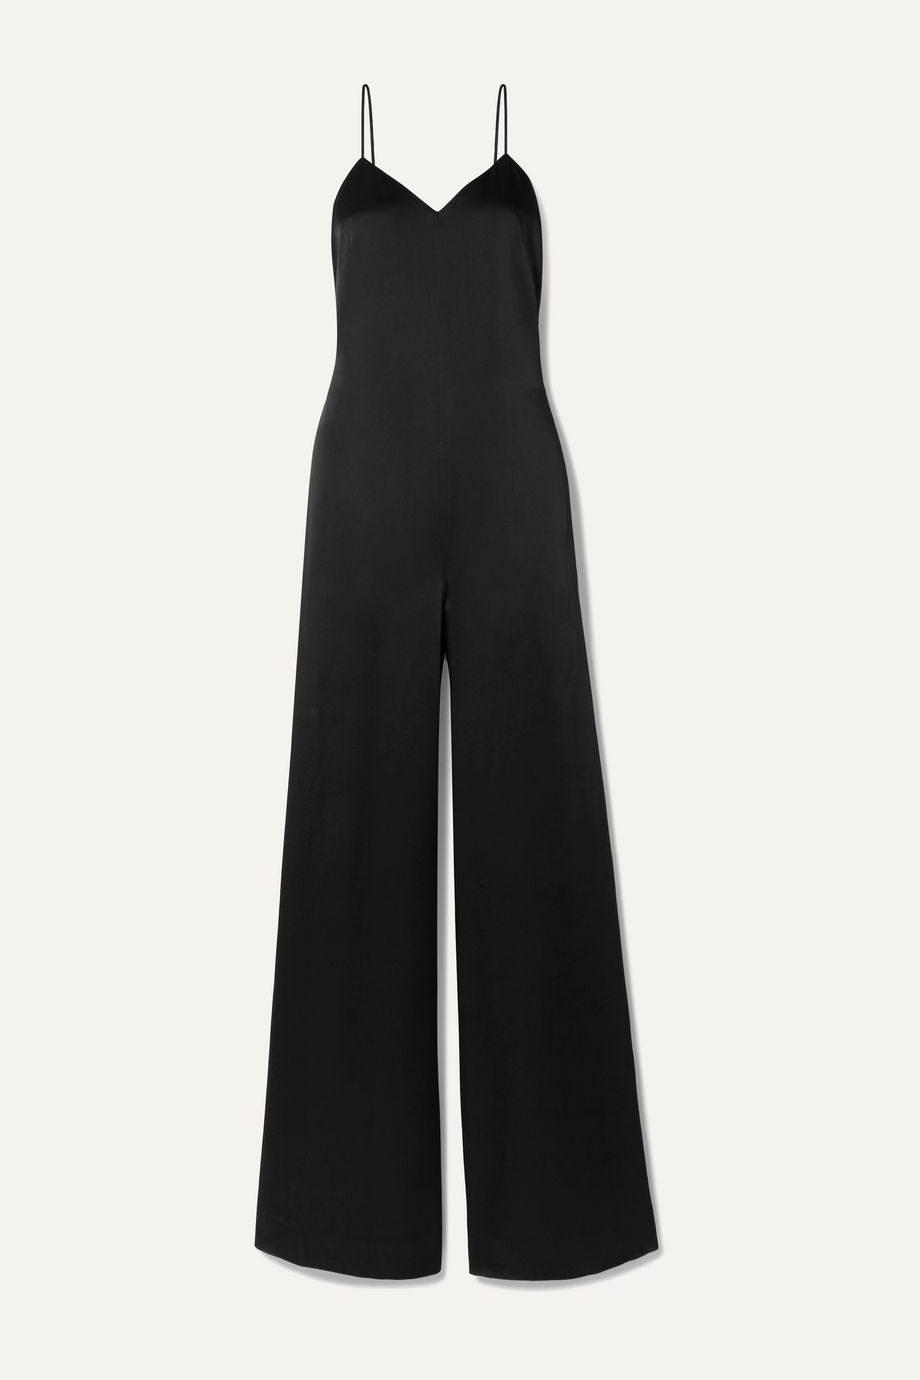 Rosetta Getty Charmeuse jumpsuit